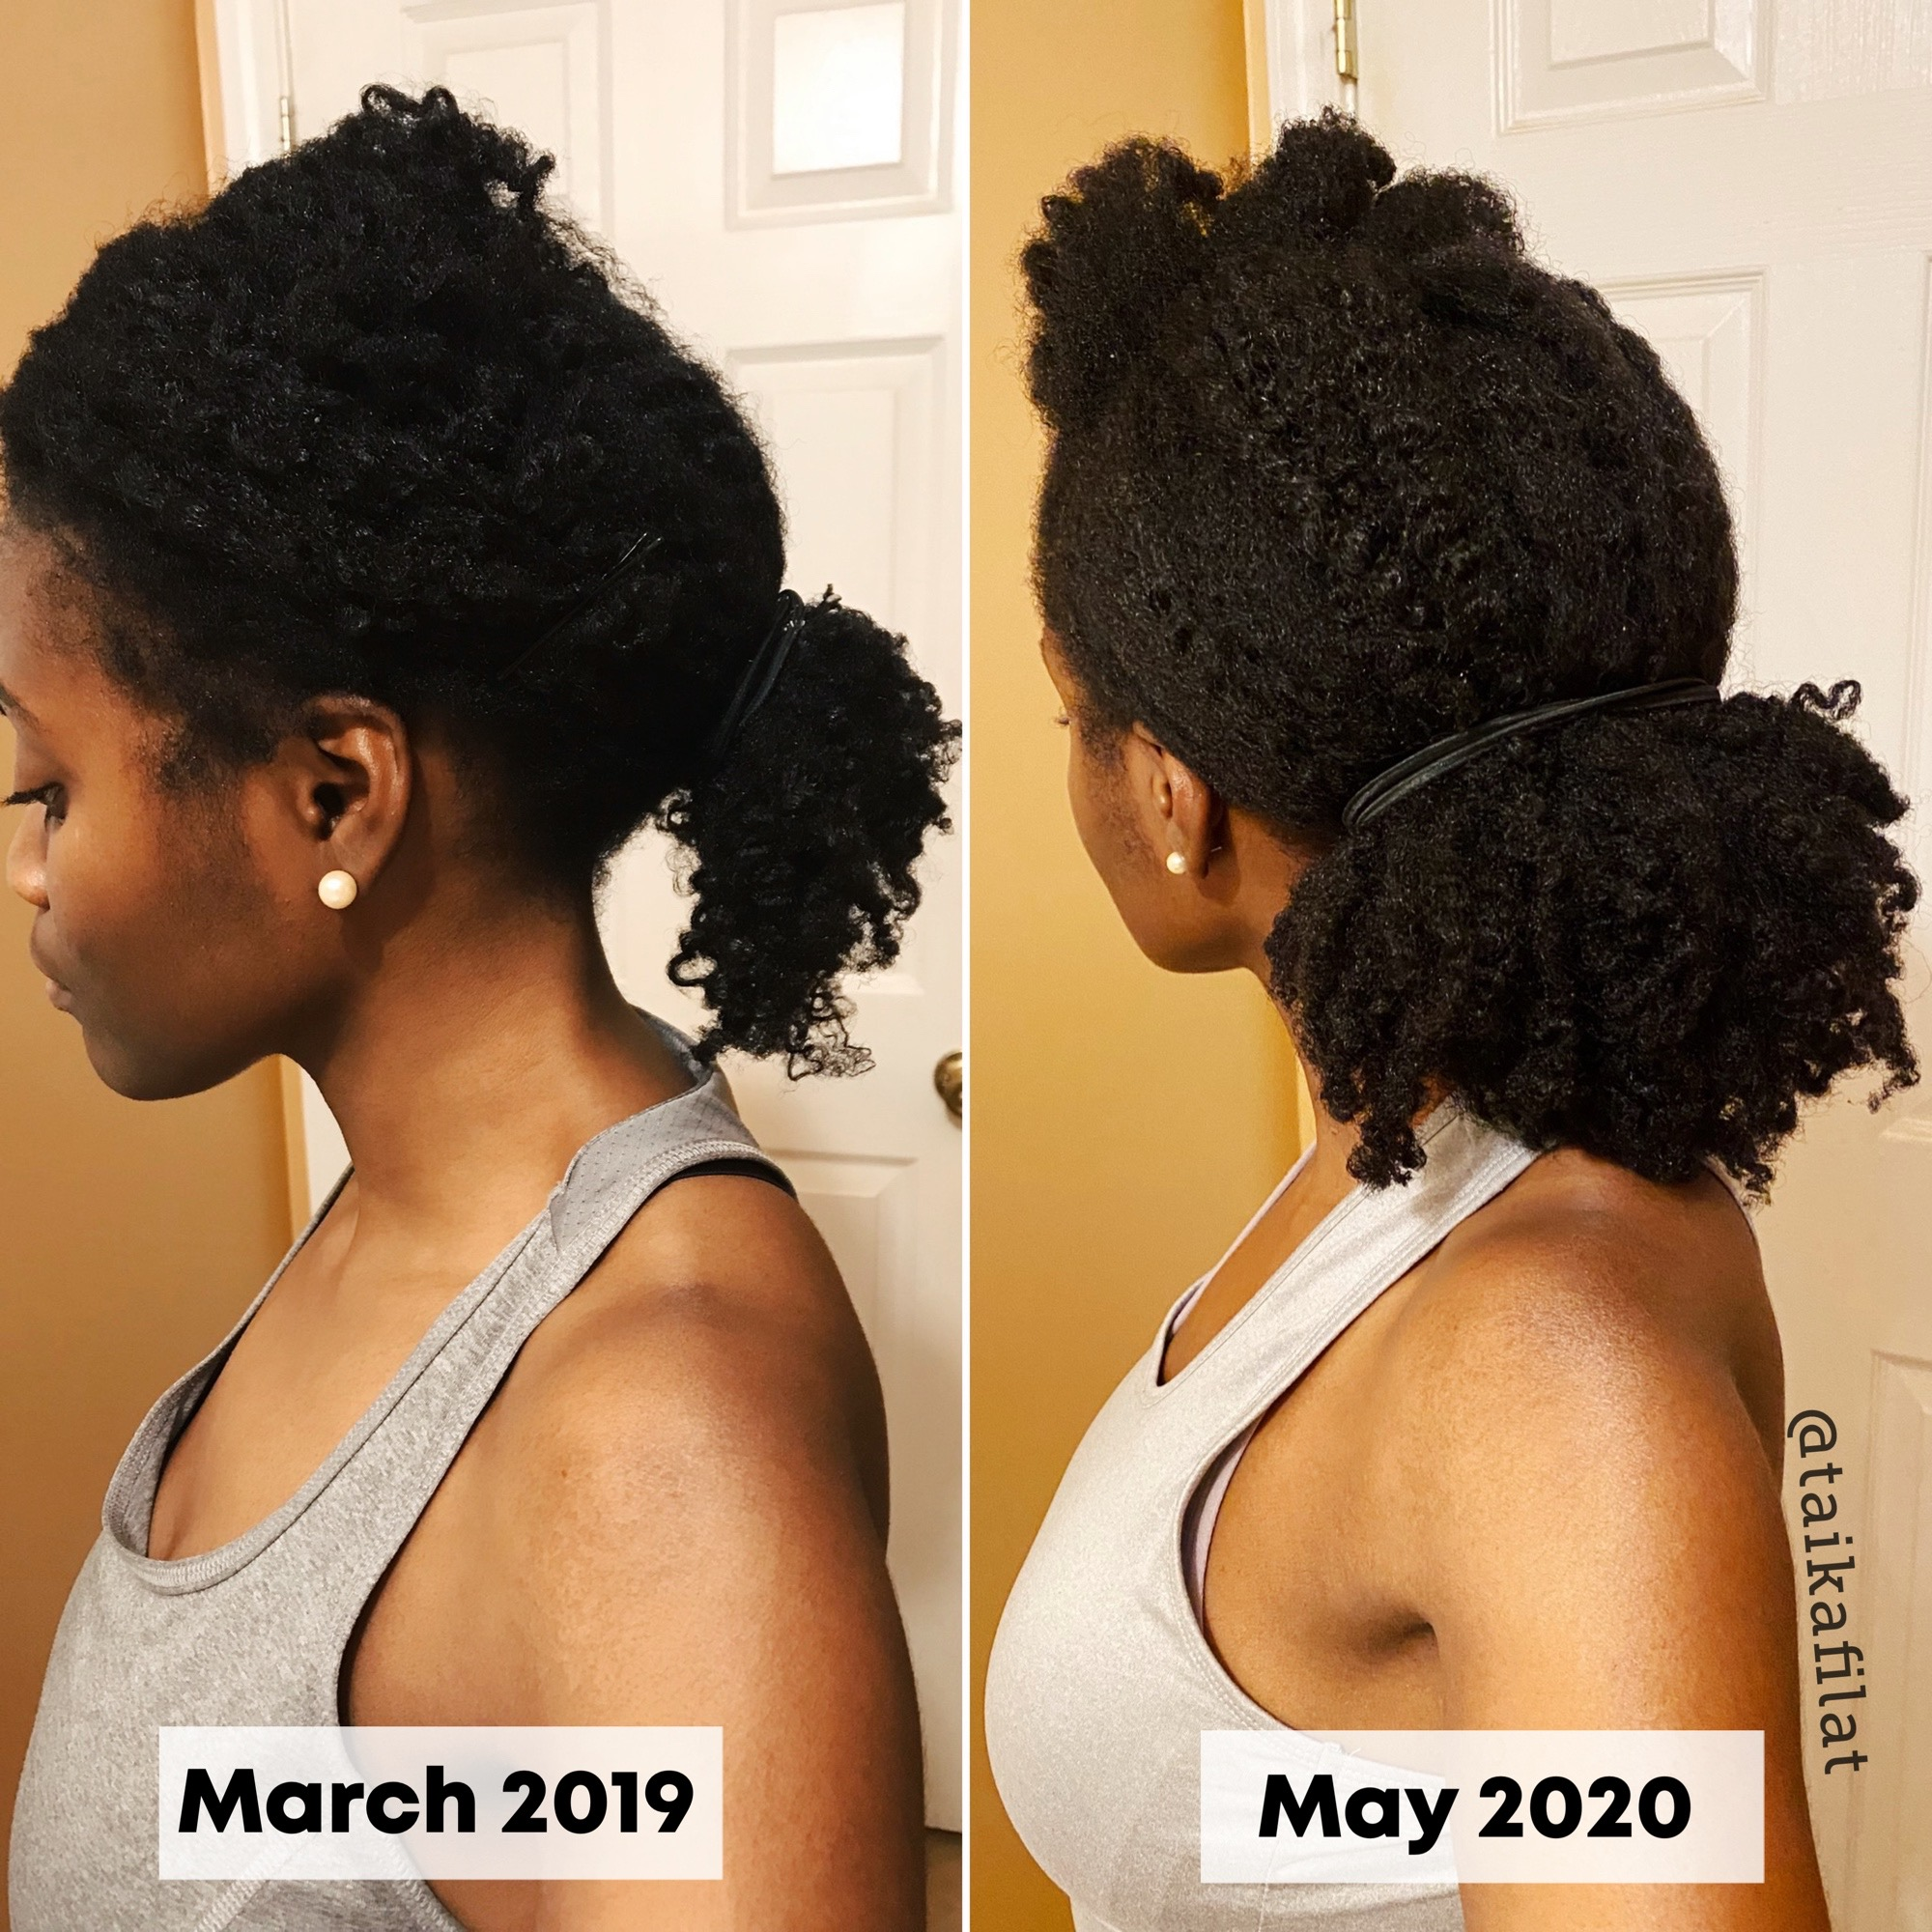 Compare and contrast hair growth progression picture of a woman with 4c natural hair.